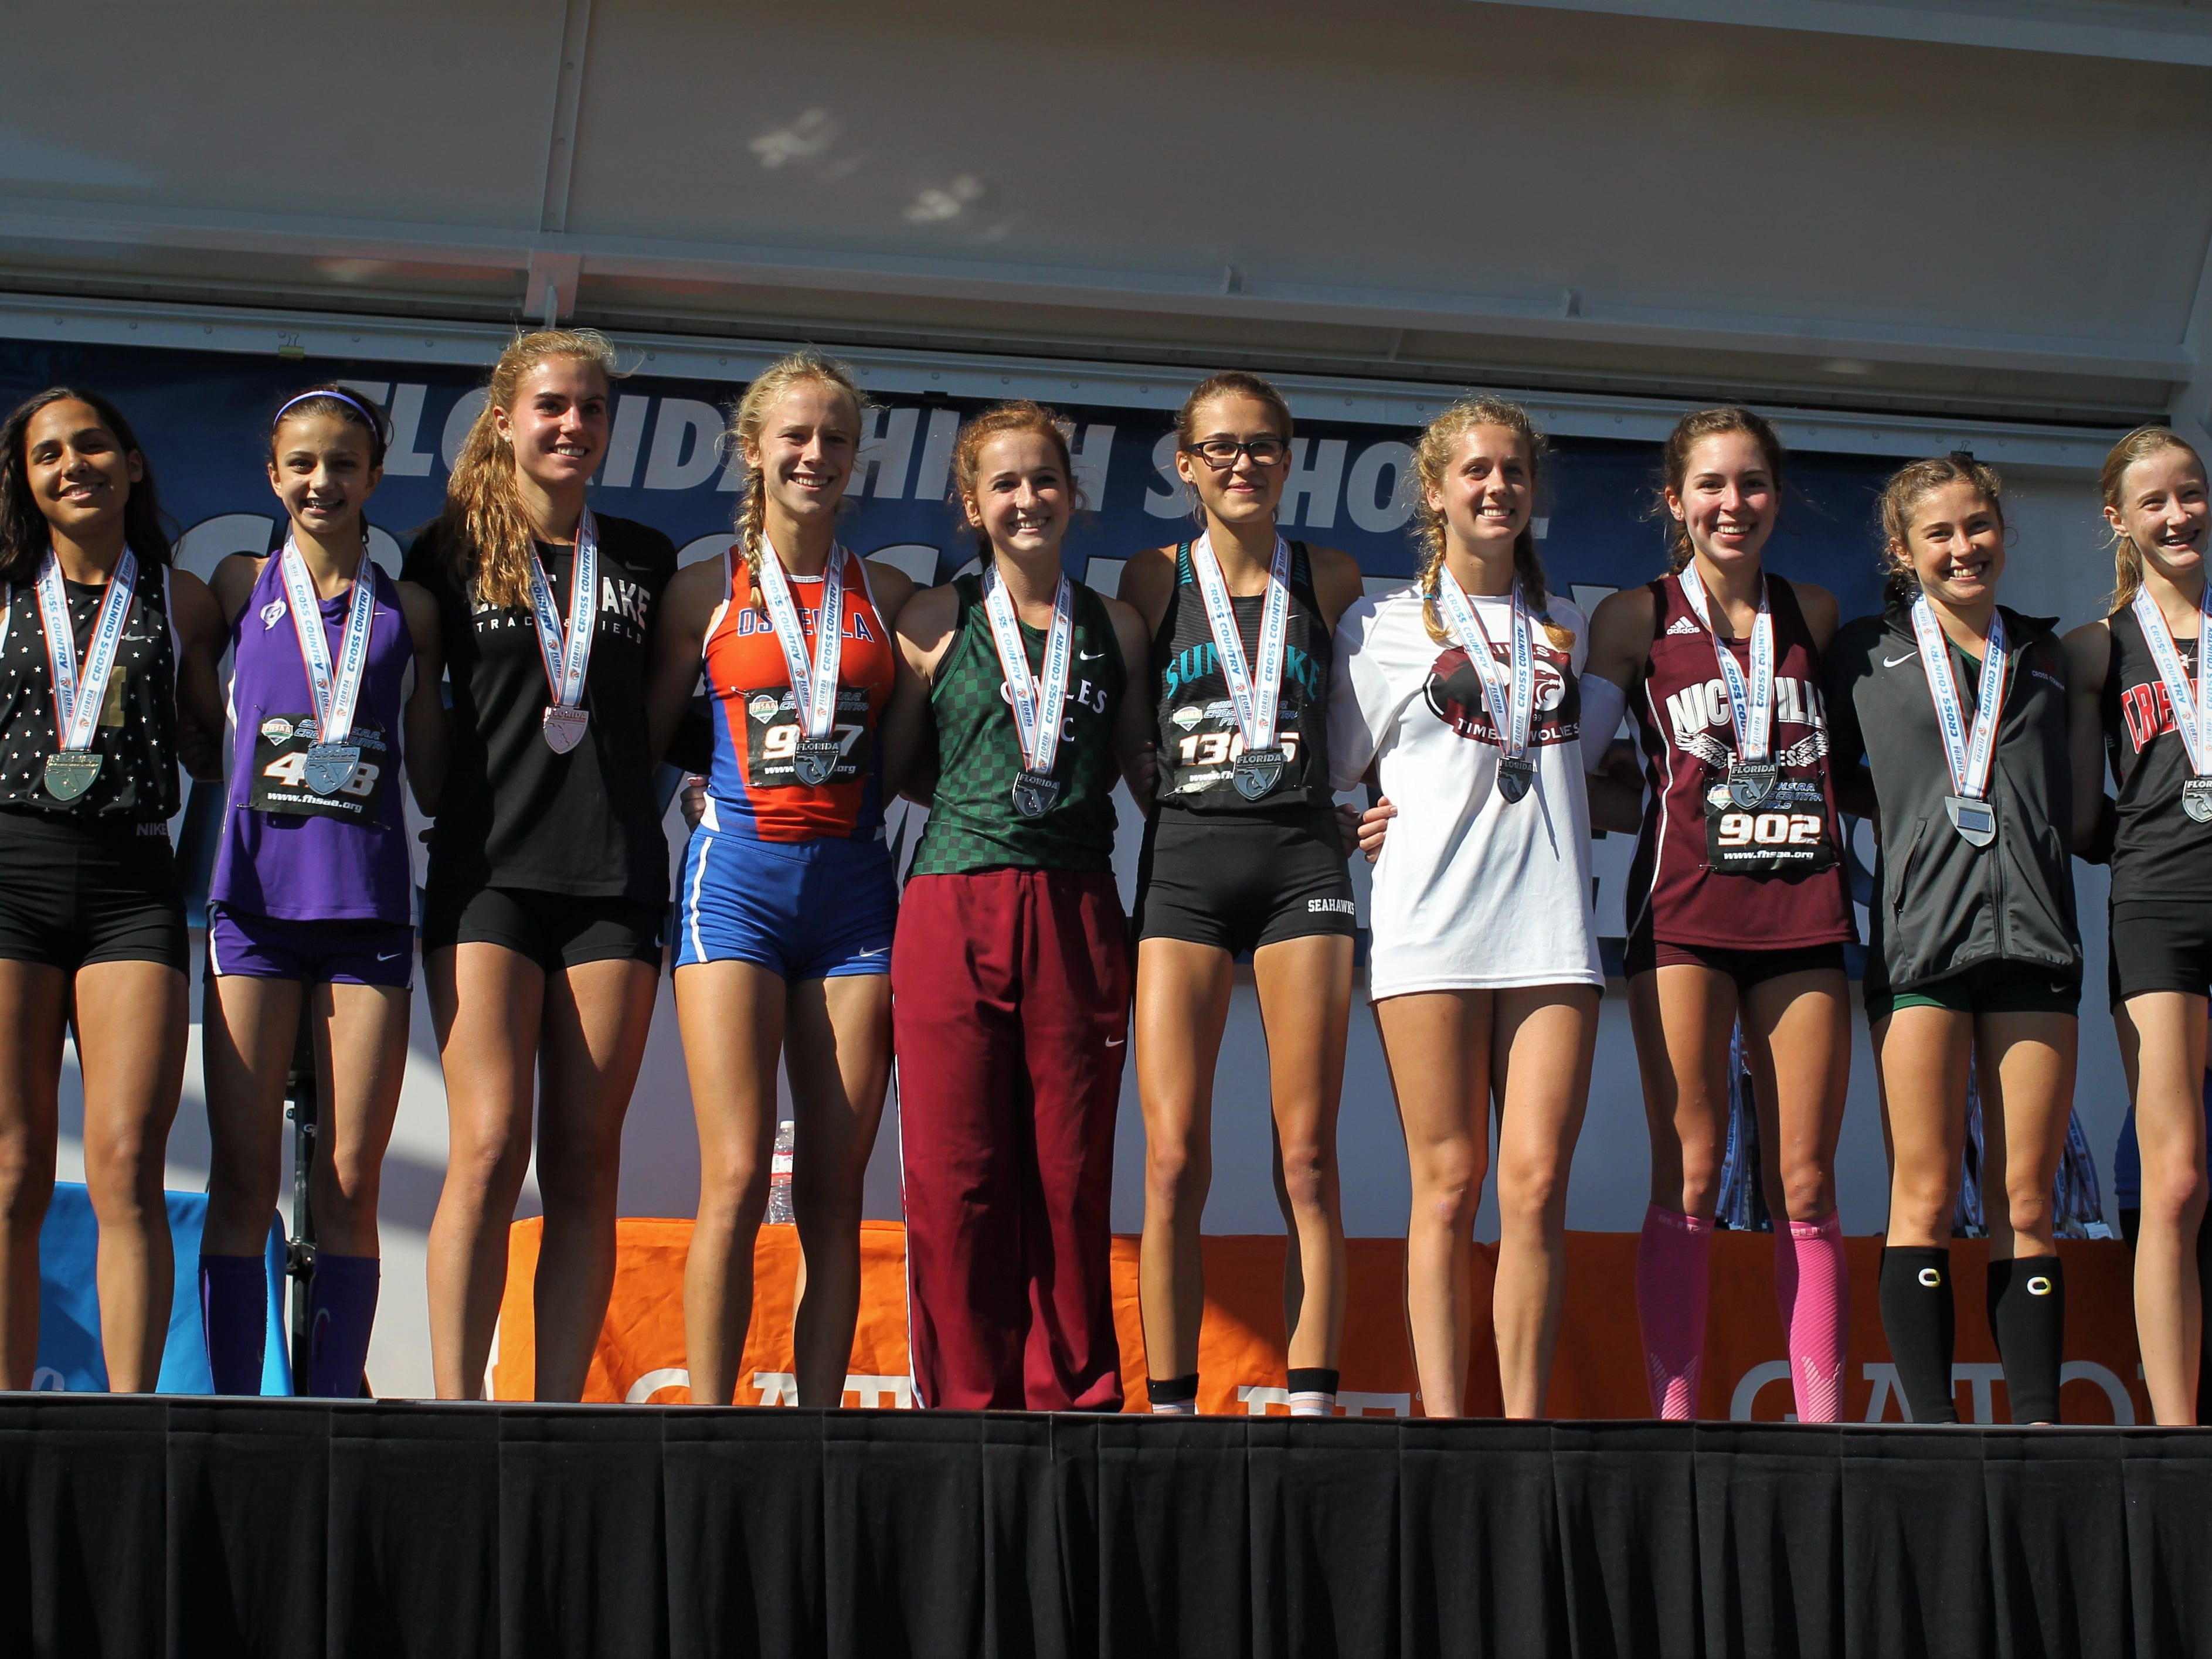 The Class 3A girls top 10 at the FHSAA Cross Country State Championships at Apalachee Regional Park on Saturday, Nov. 10, 2018. Chiles' Emily Culley (5th), Caitlin Wilkey (7th) and Alyson Churchill (9th) helped the Timberwolves to a state title.